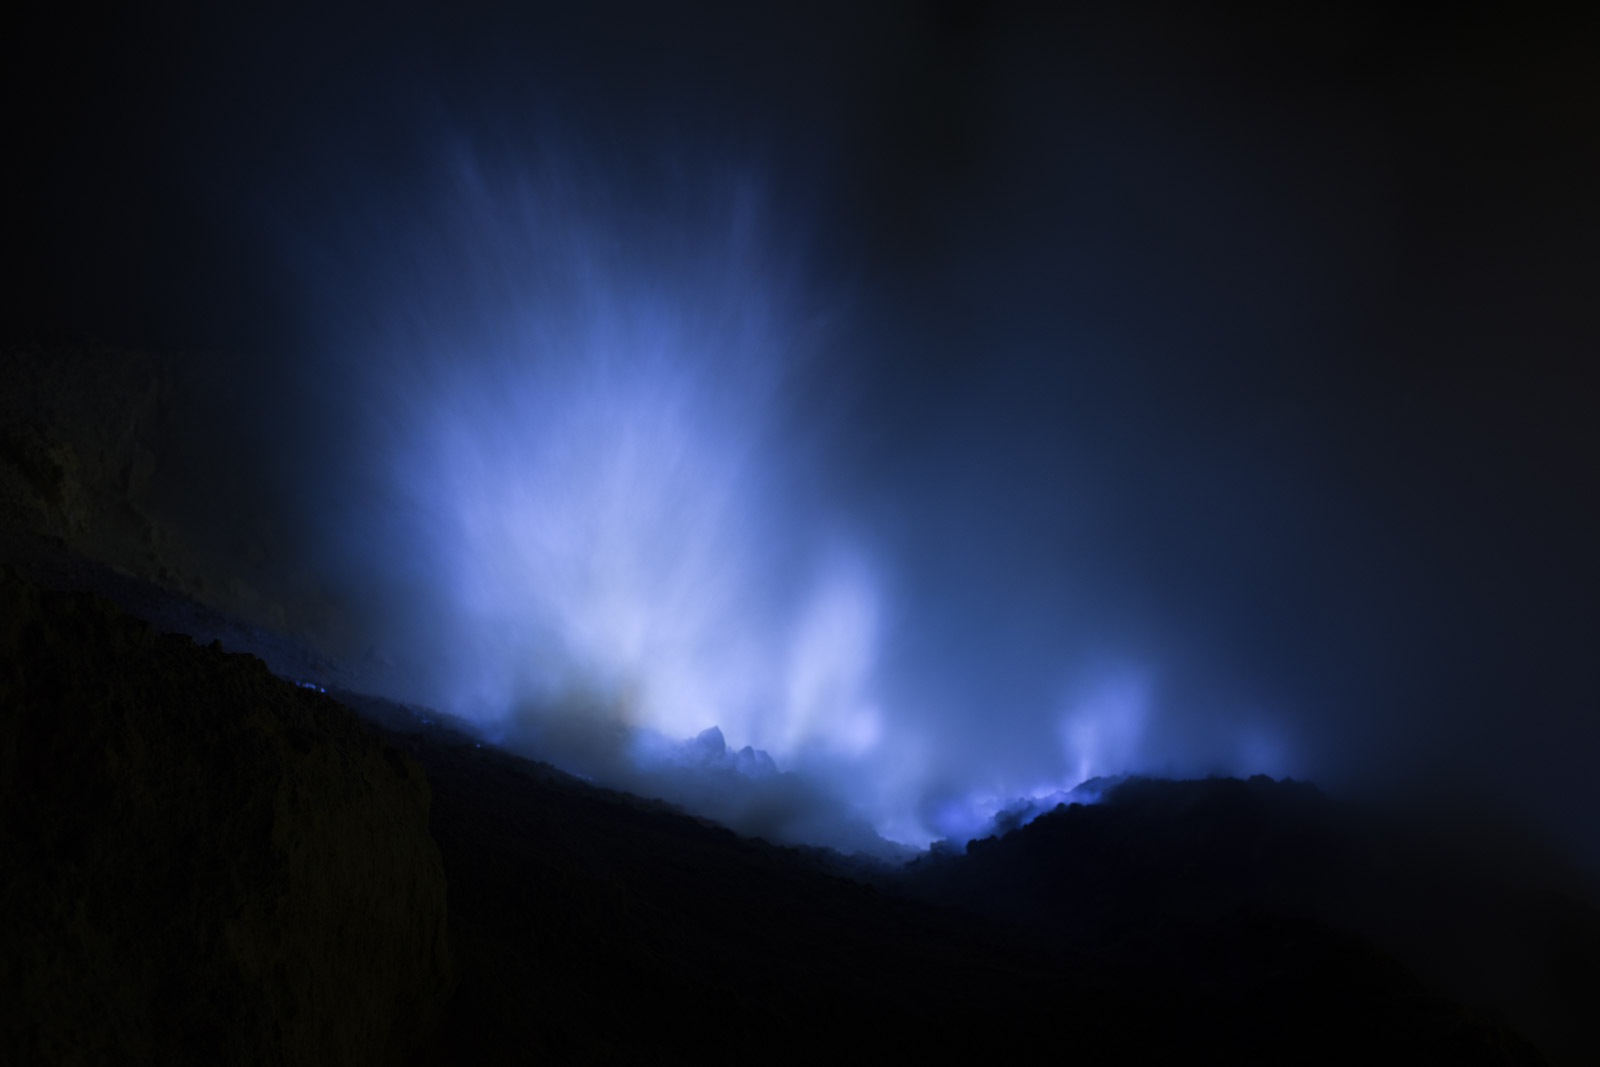 The blue flames of sulphur burning in the crater of Mount Ijen, Java, Indonesia September 2016. ©Laurence Gibson